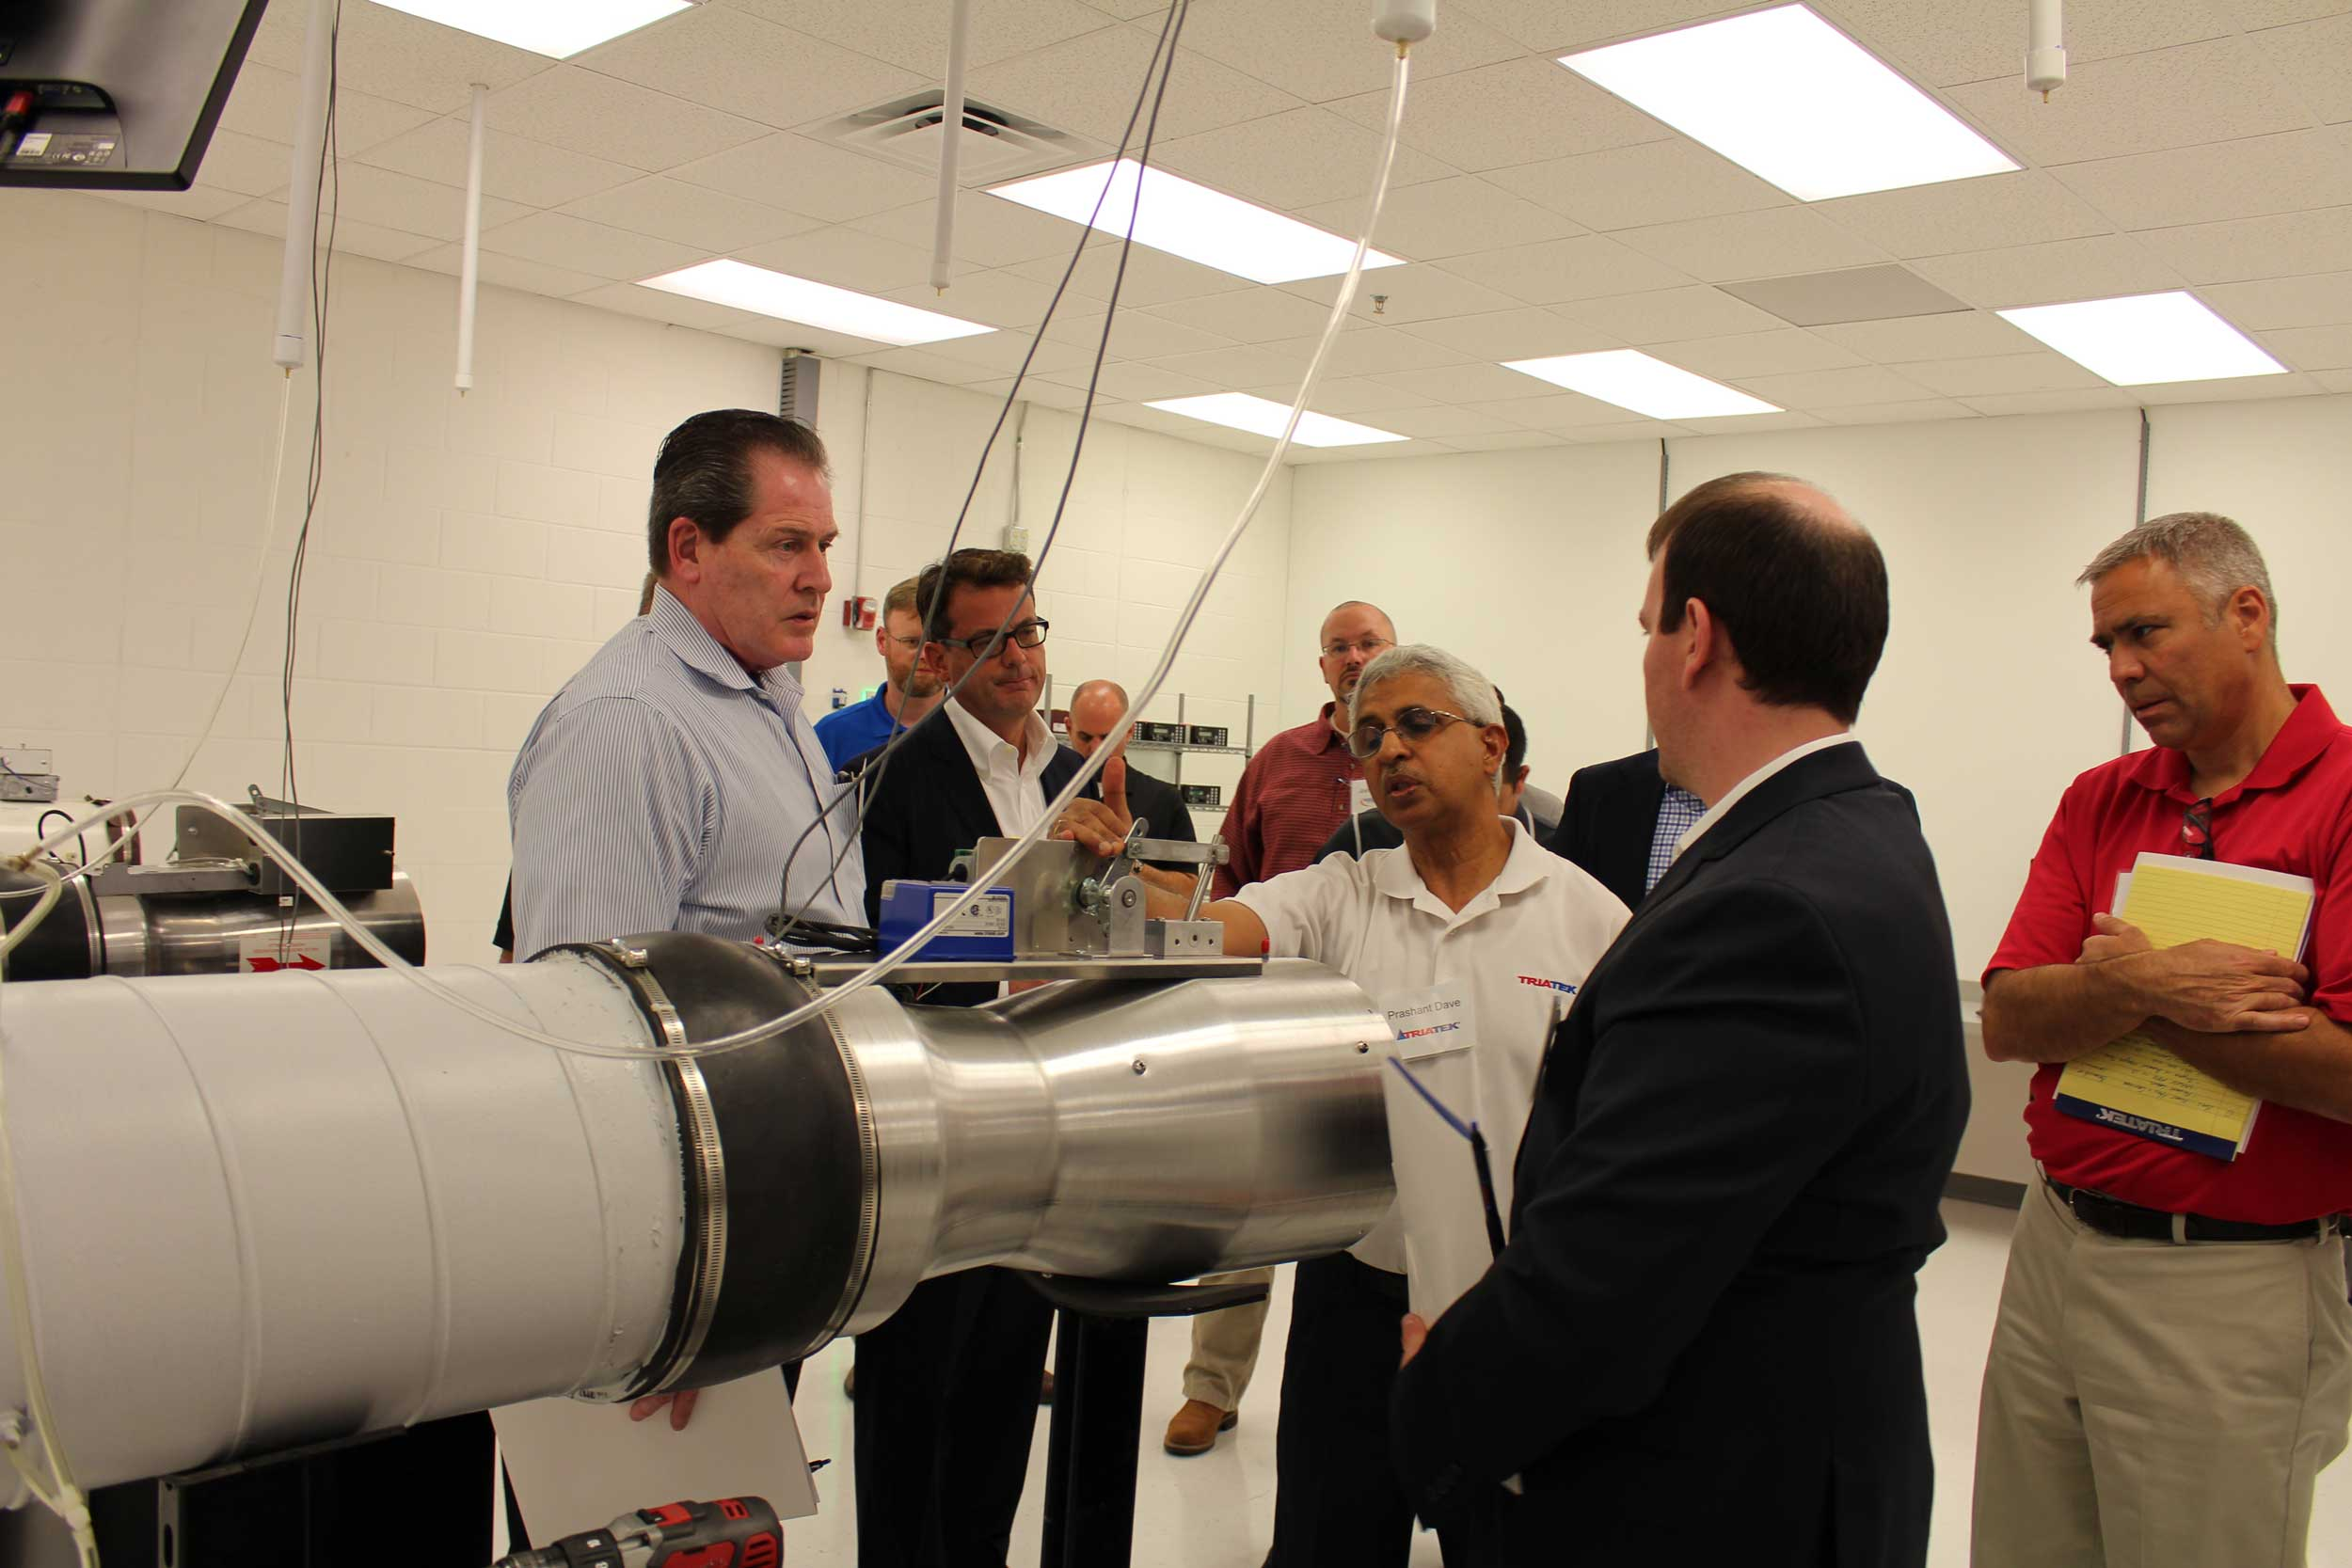 Prashant Dave gives a tour of Triatek's Calibration Room